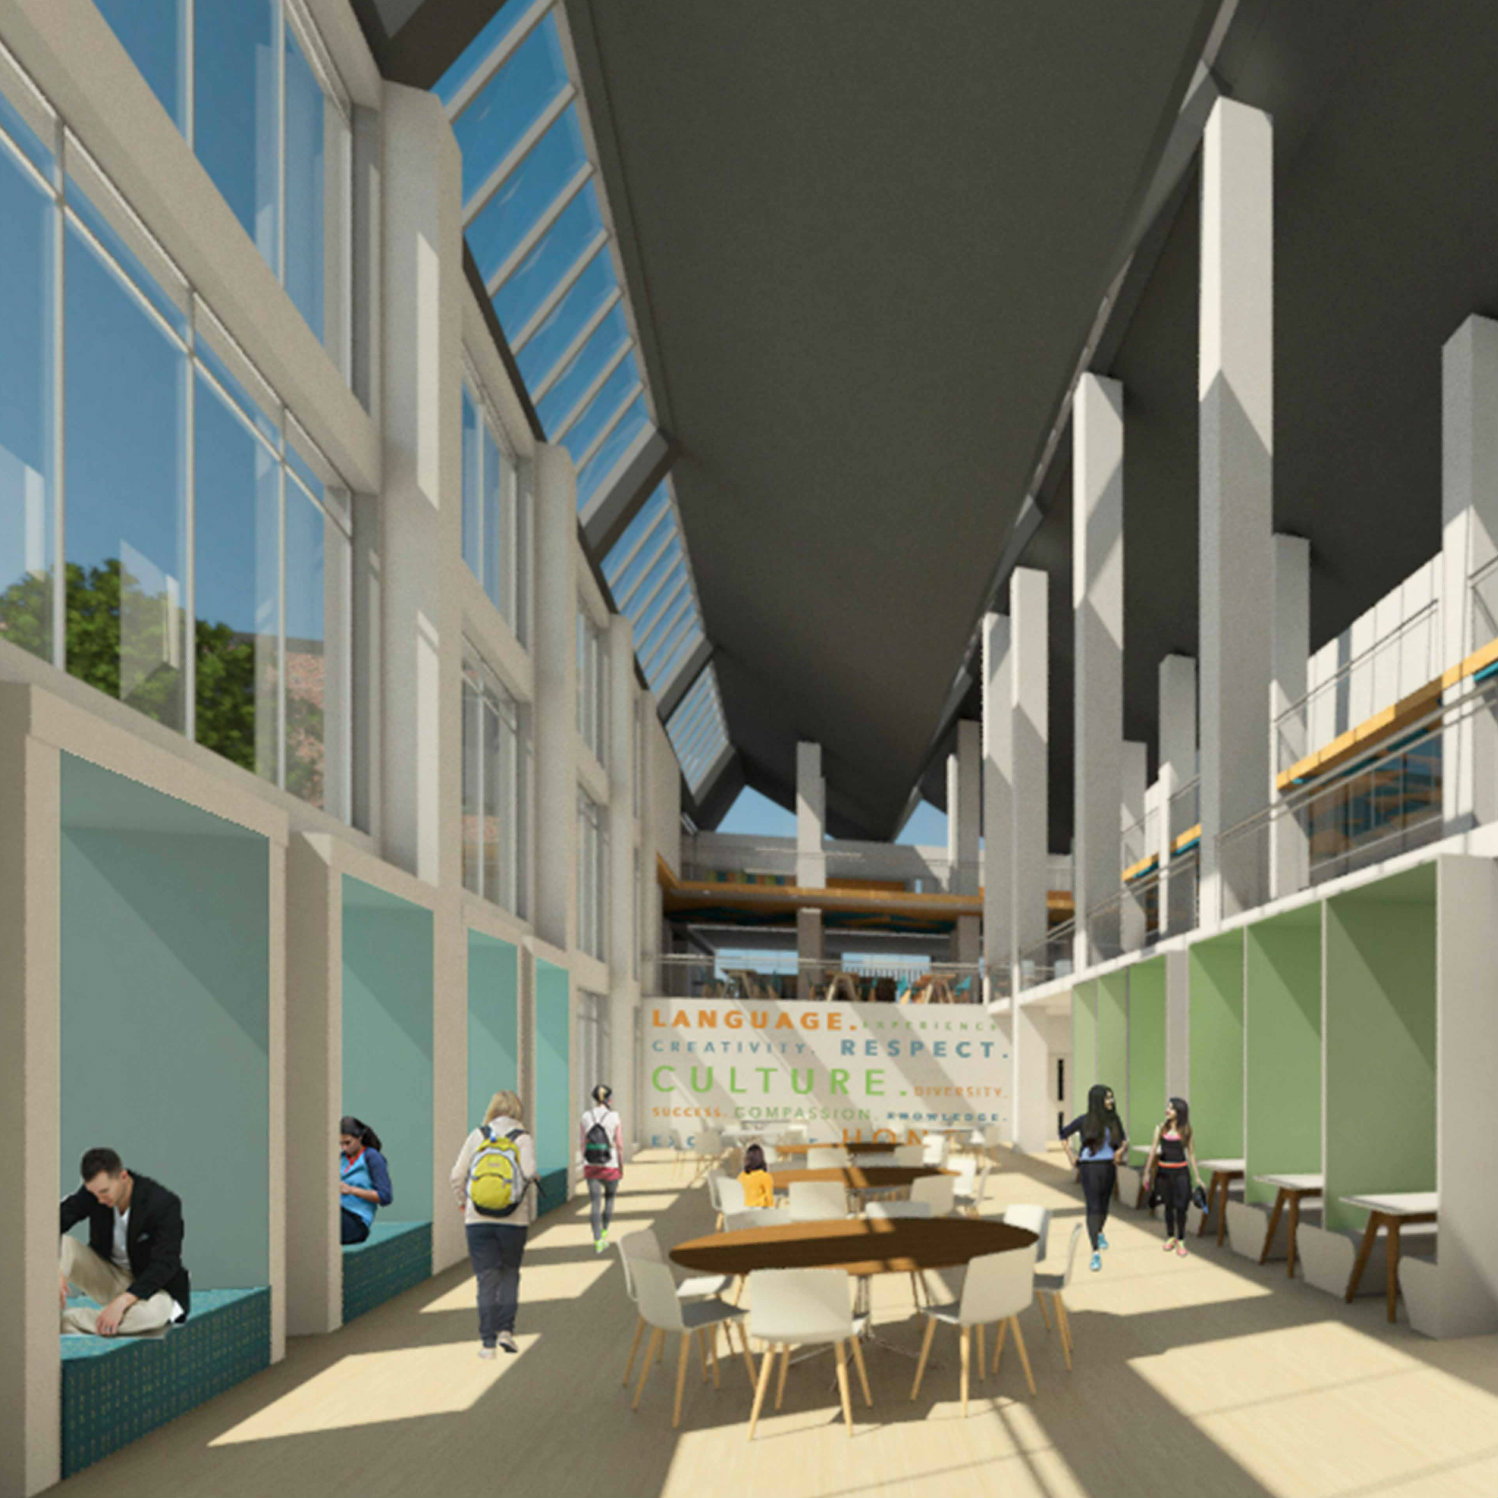 rendering of interior of school atrium